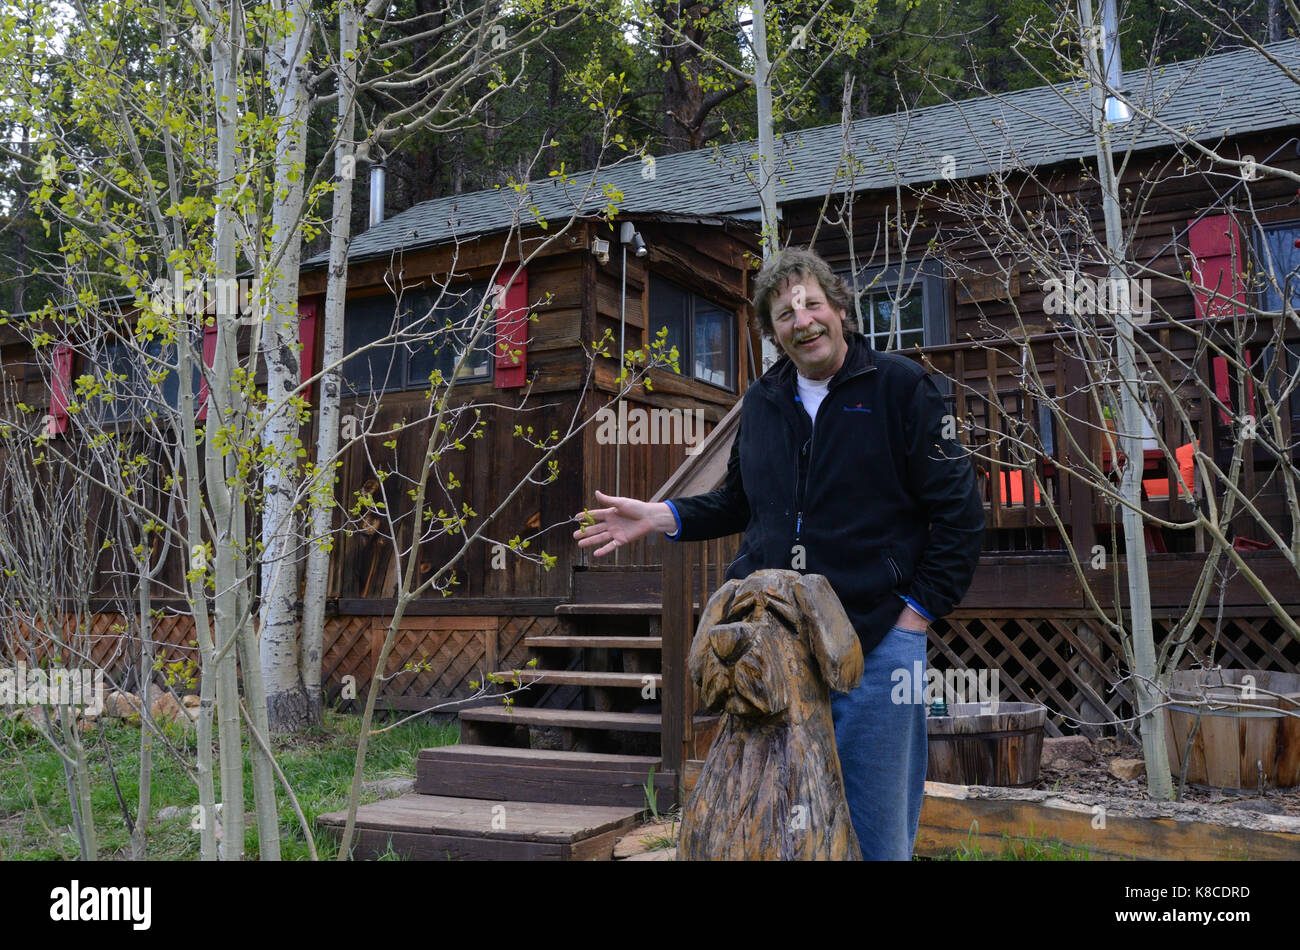 Jeff Eckstrom in front of his cabin near Nederland, CO, Dog sculpture, mountain living - Stock Image